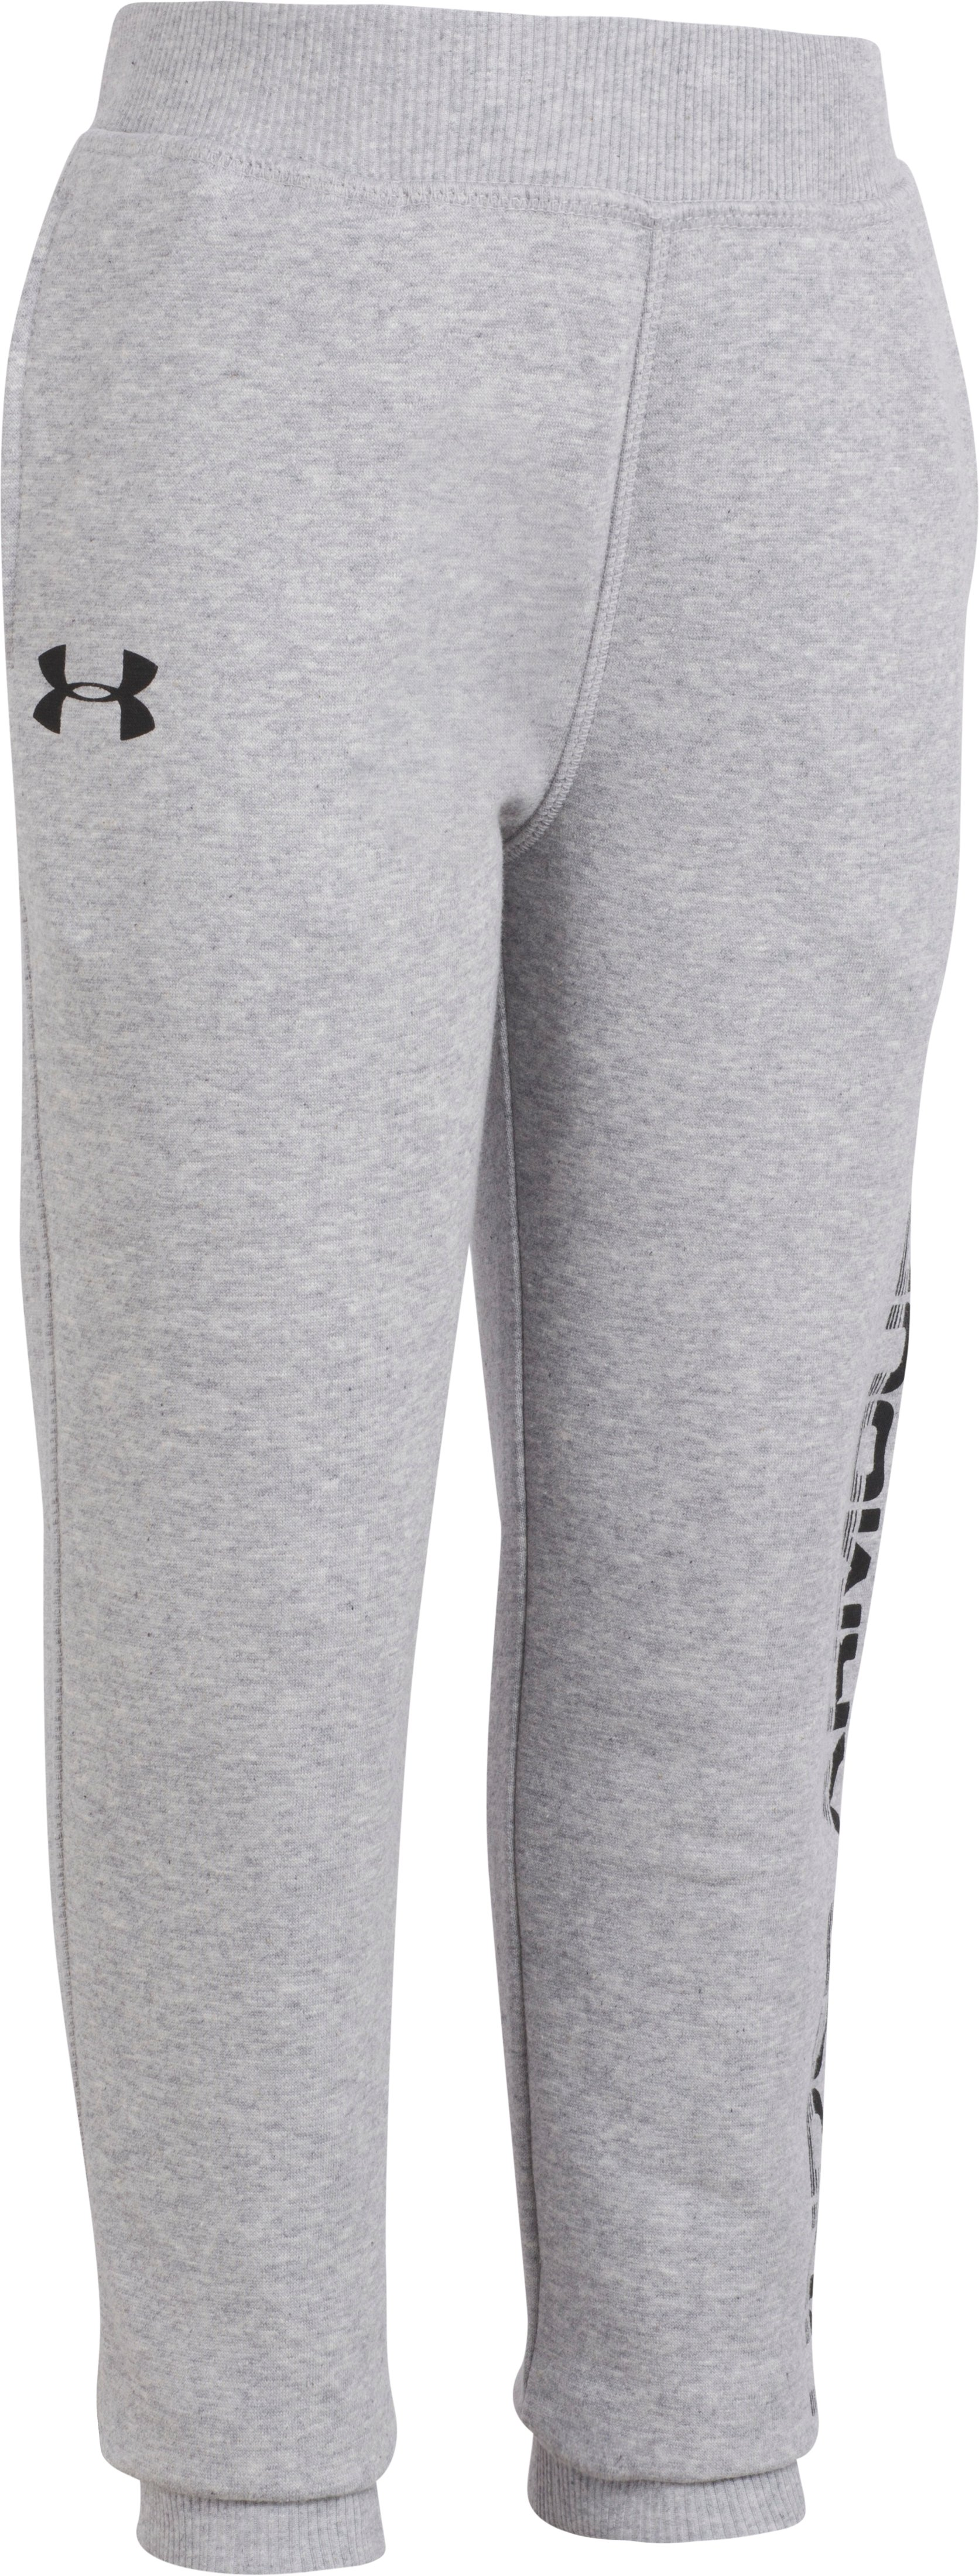 Boys' Pre-School UA Threadborne Joggers, True Gray Heather, Laydown